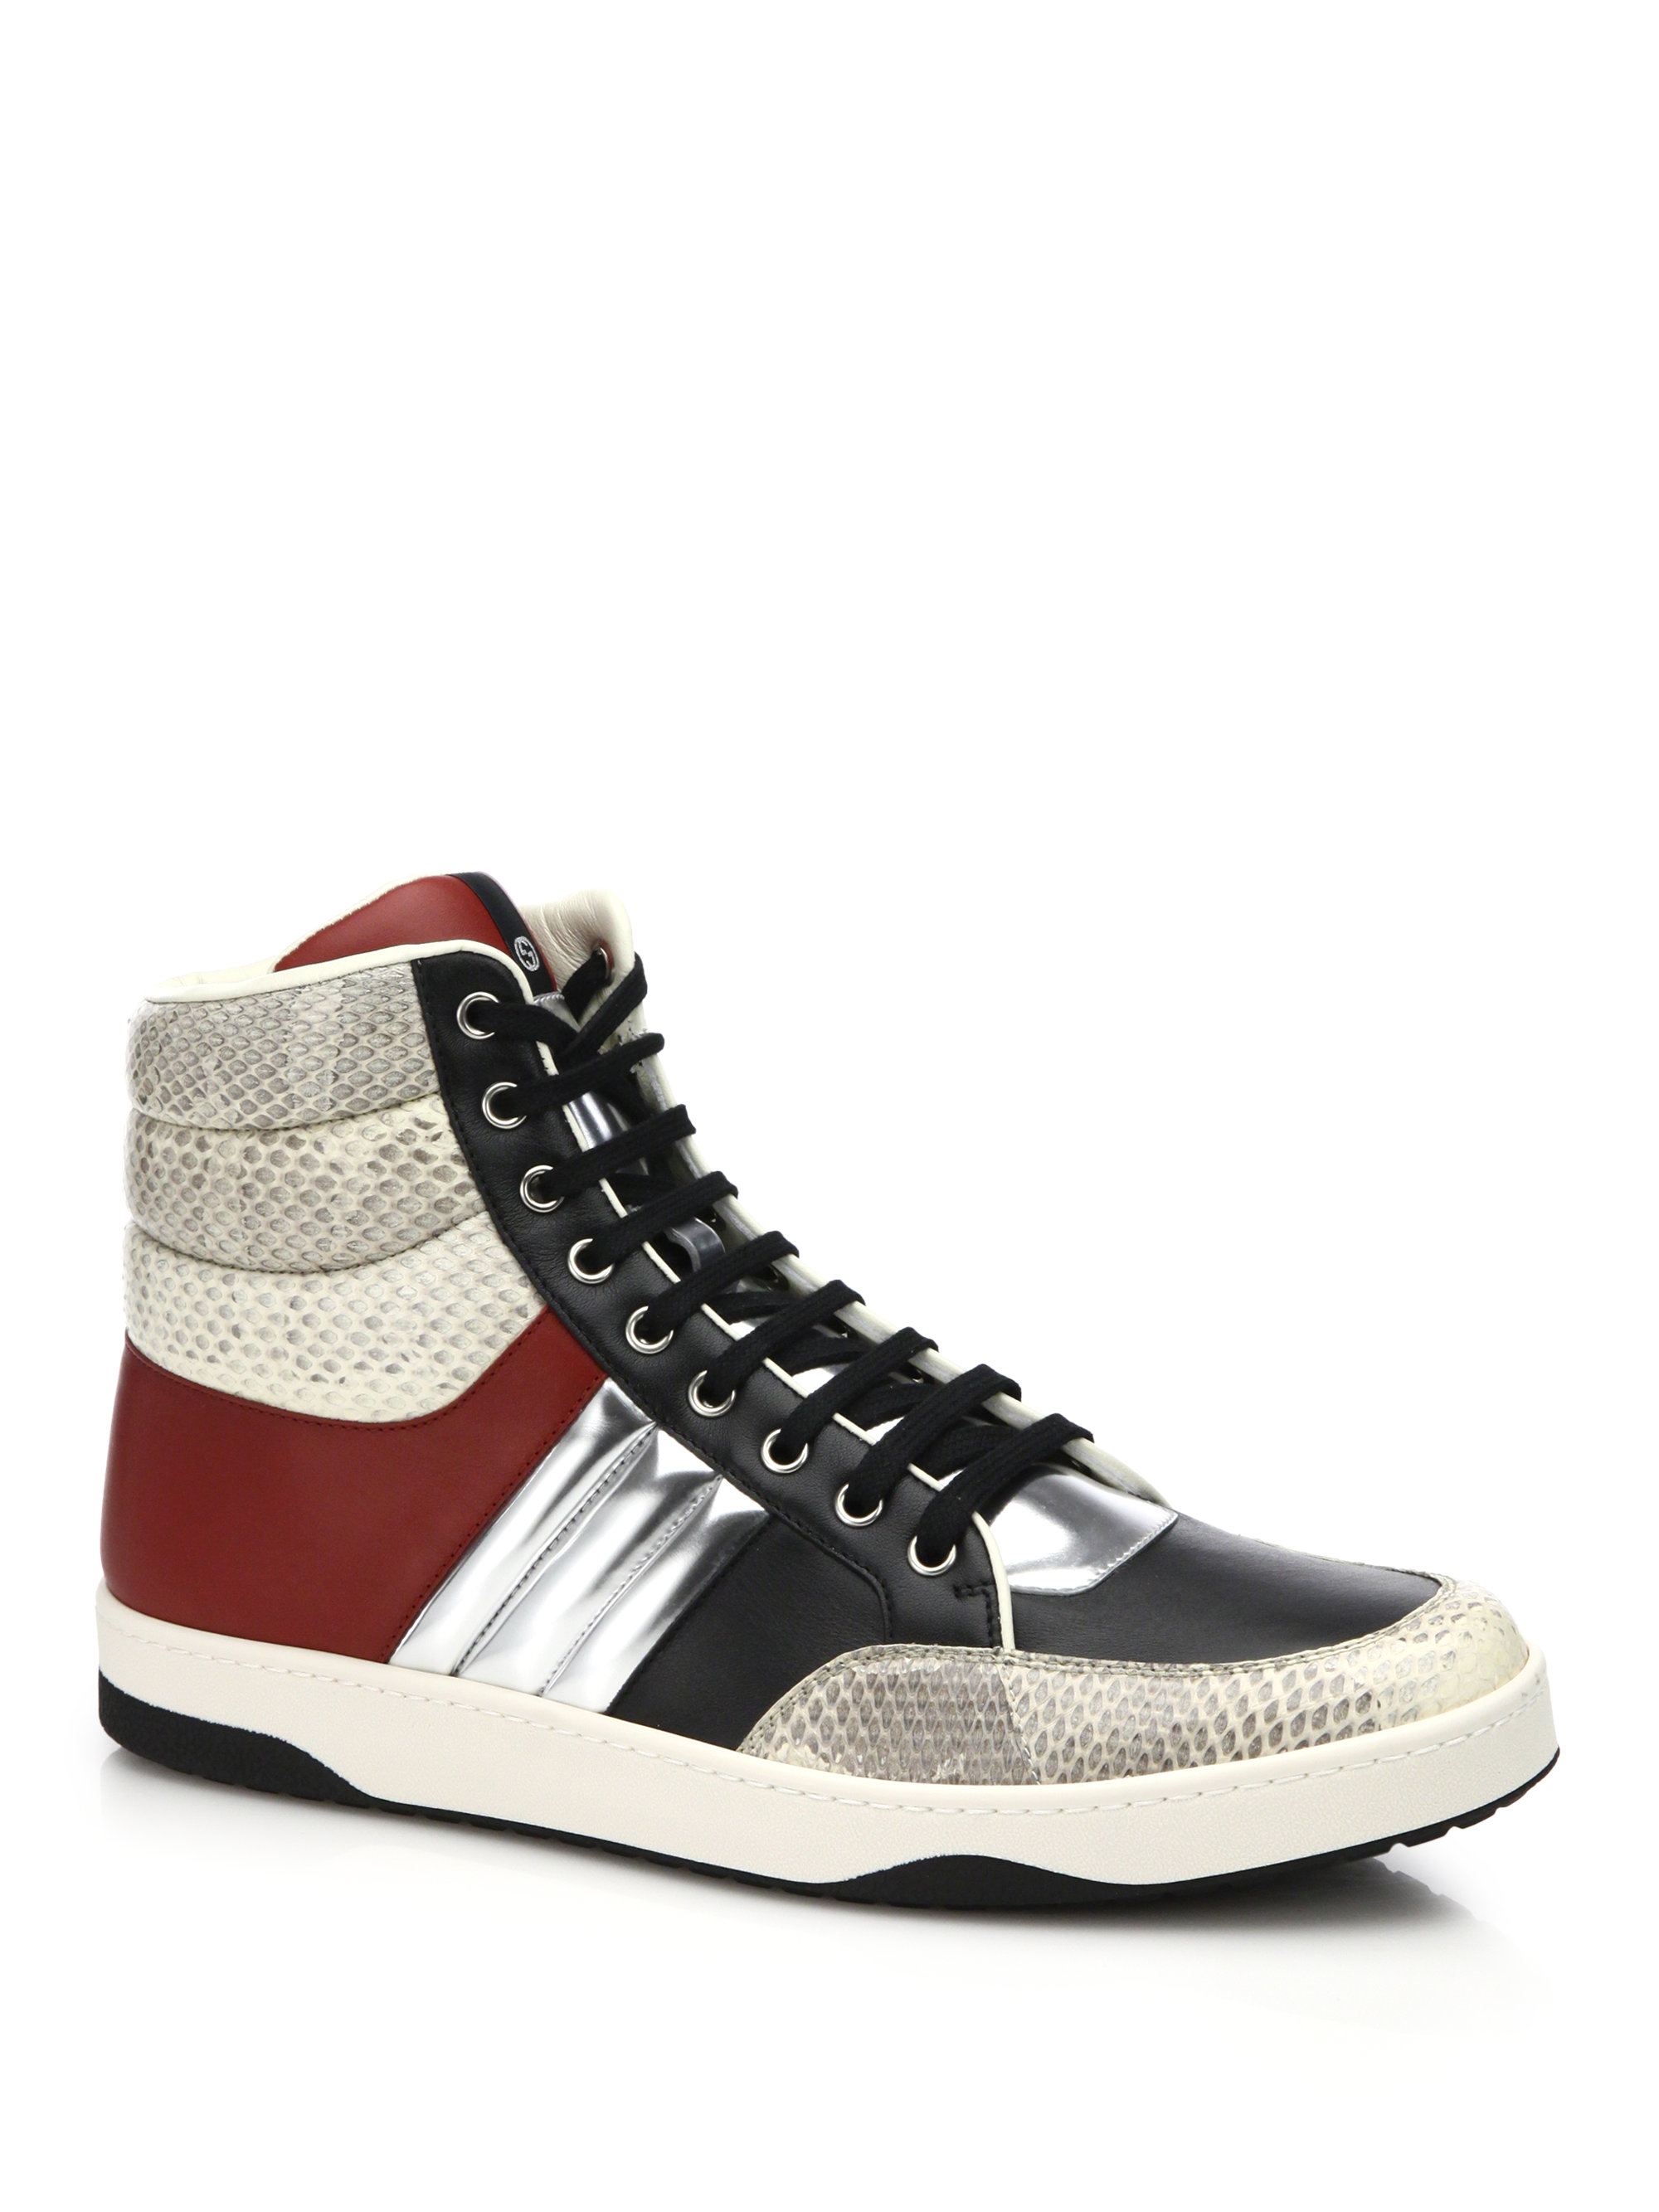 9a59bbc848e6a Gucci Ronnie Snakeskin   Leather High-top Sneakers for Men